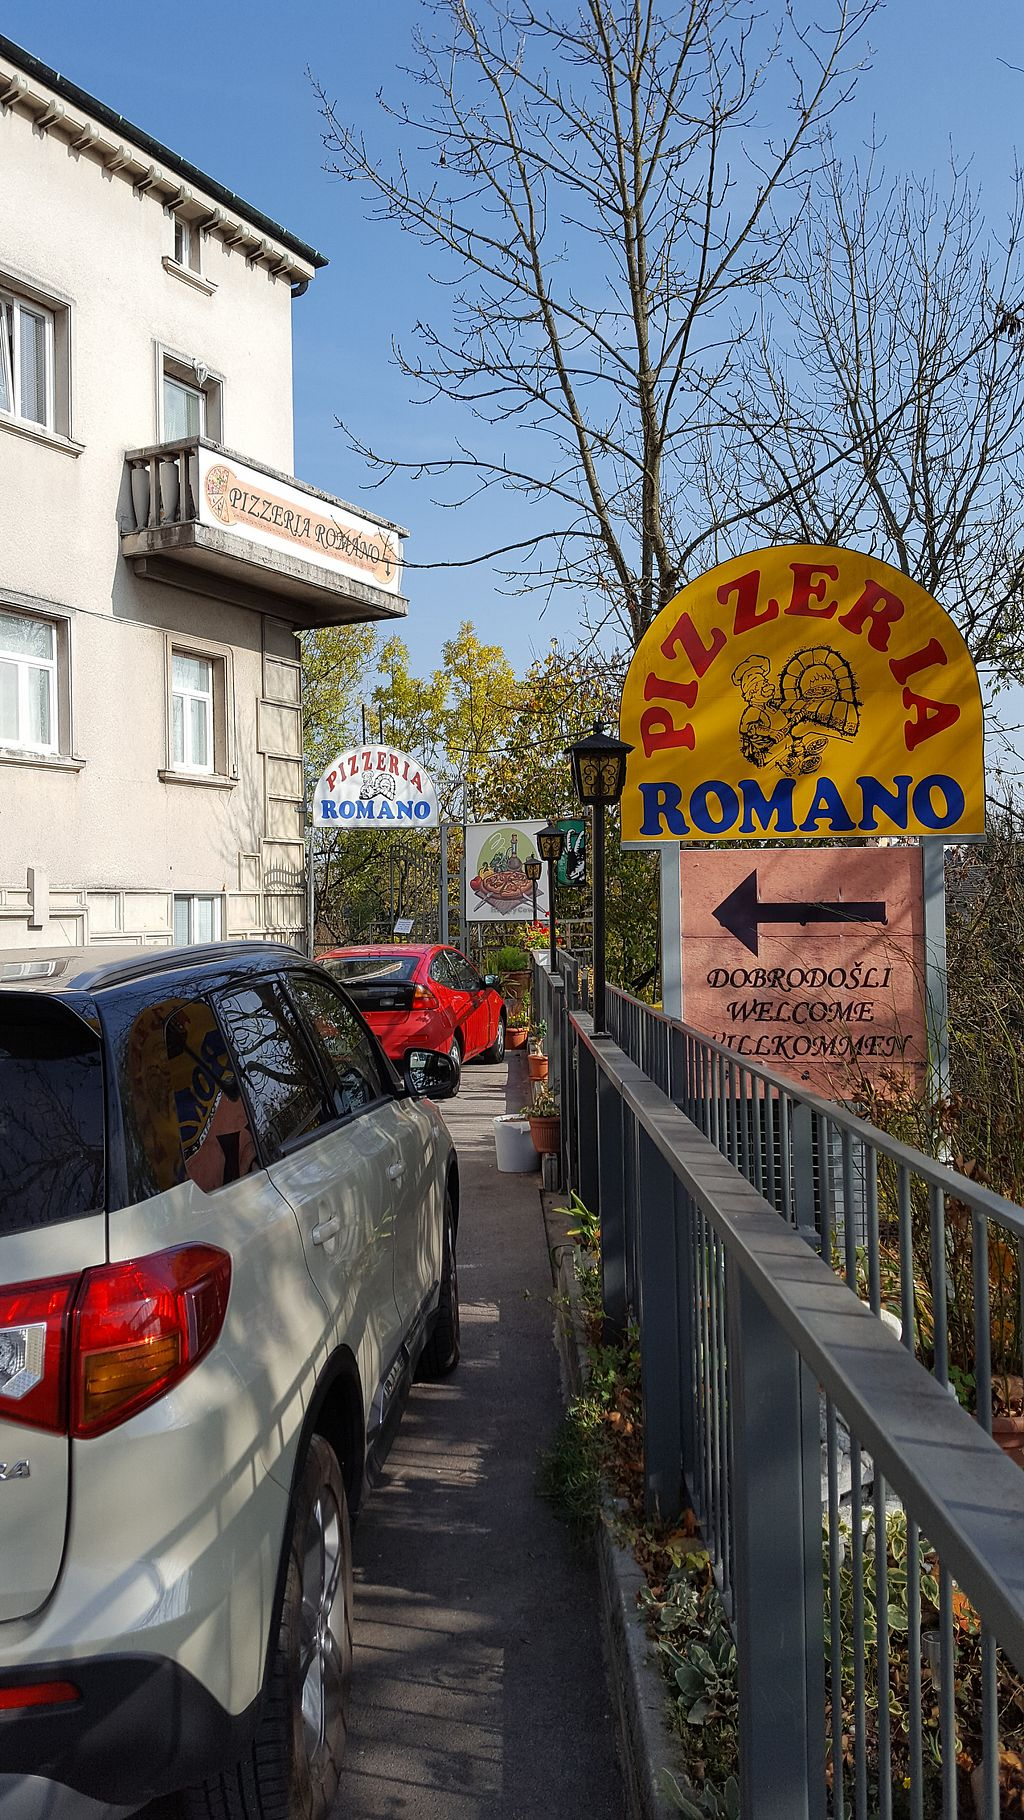 """Photo of Pizzerija Romano  by <a href=""""/members/profile/Seiashun"""">Seiashun</a> <br/>Signs leading to the restaurant <br/> October 21, 2017  - <a href='/contact/abuse/image/76507/317379'>Report</a>"""